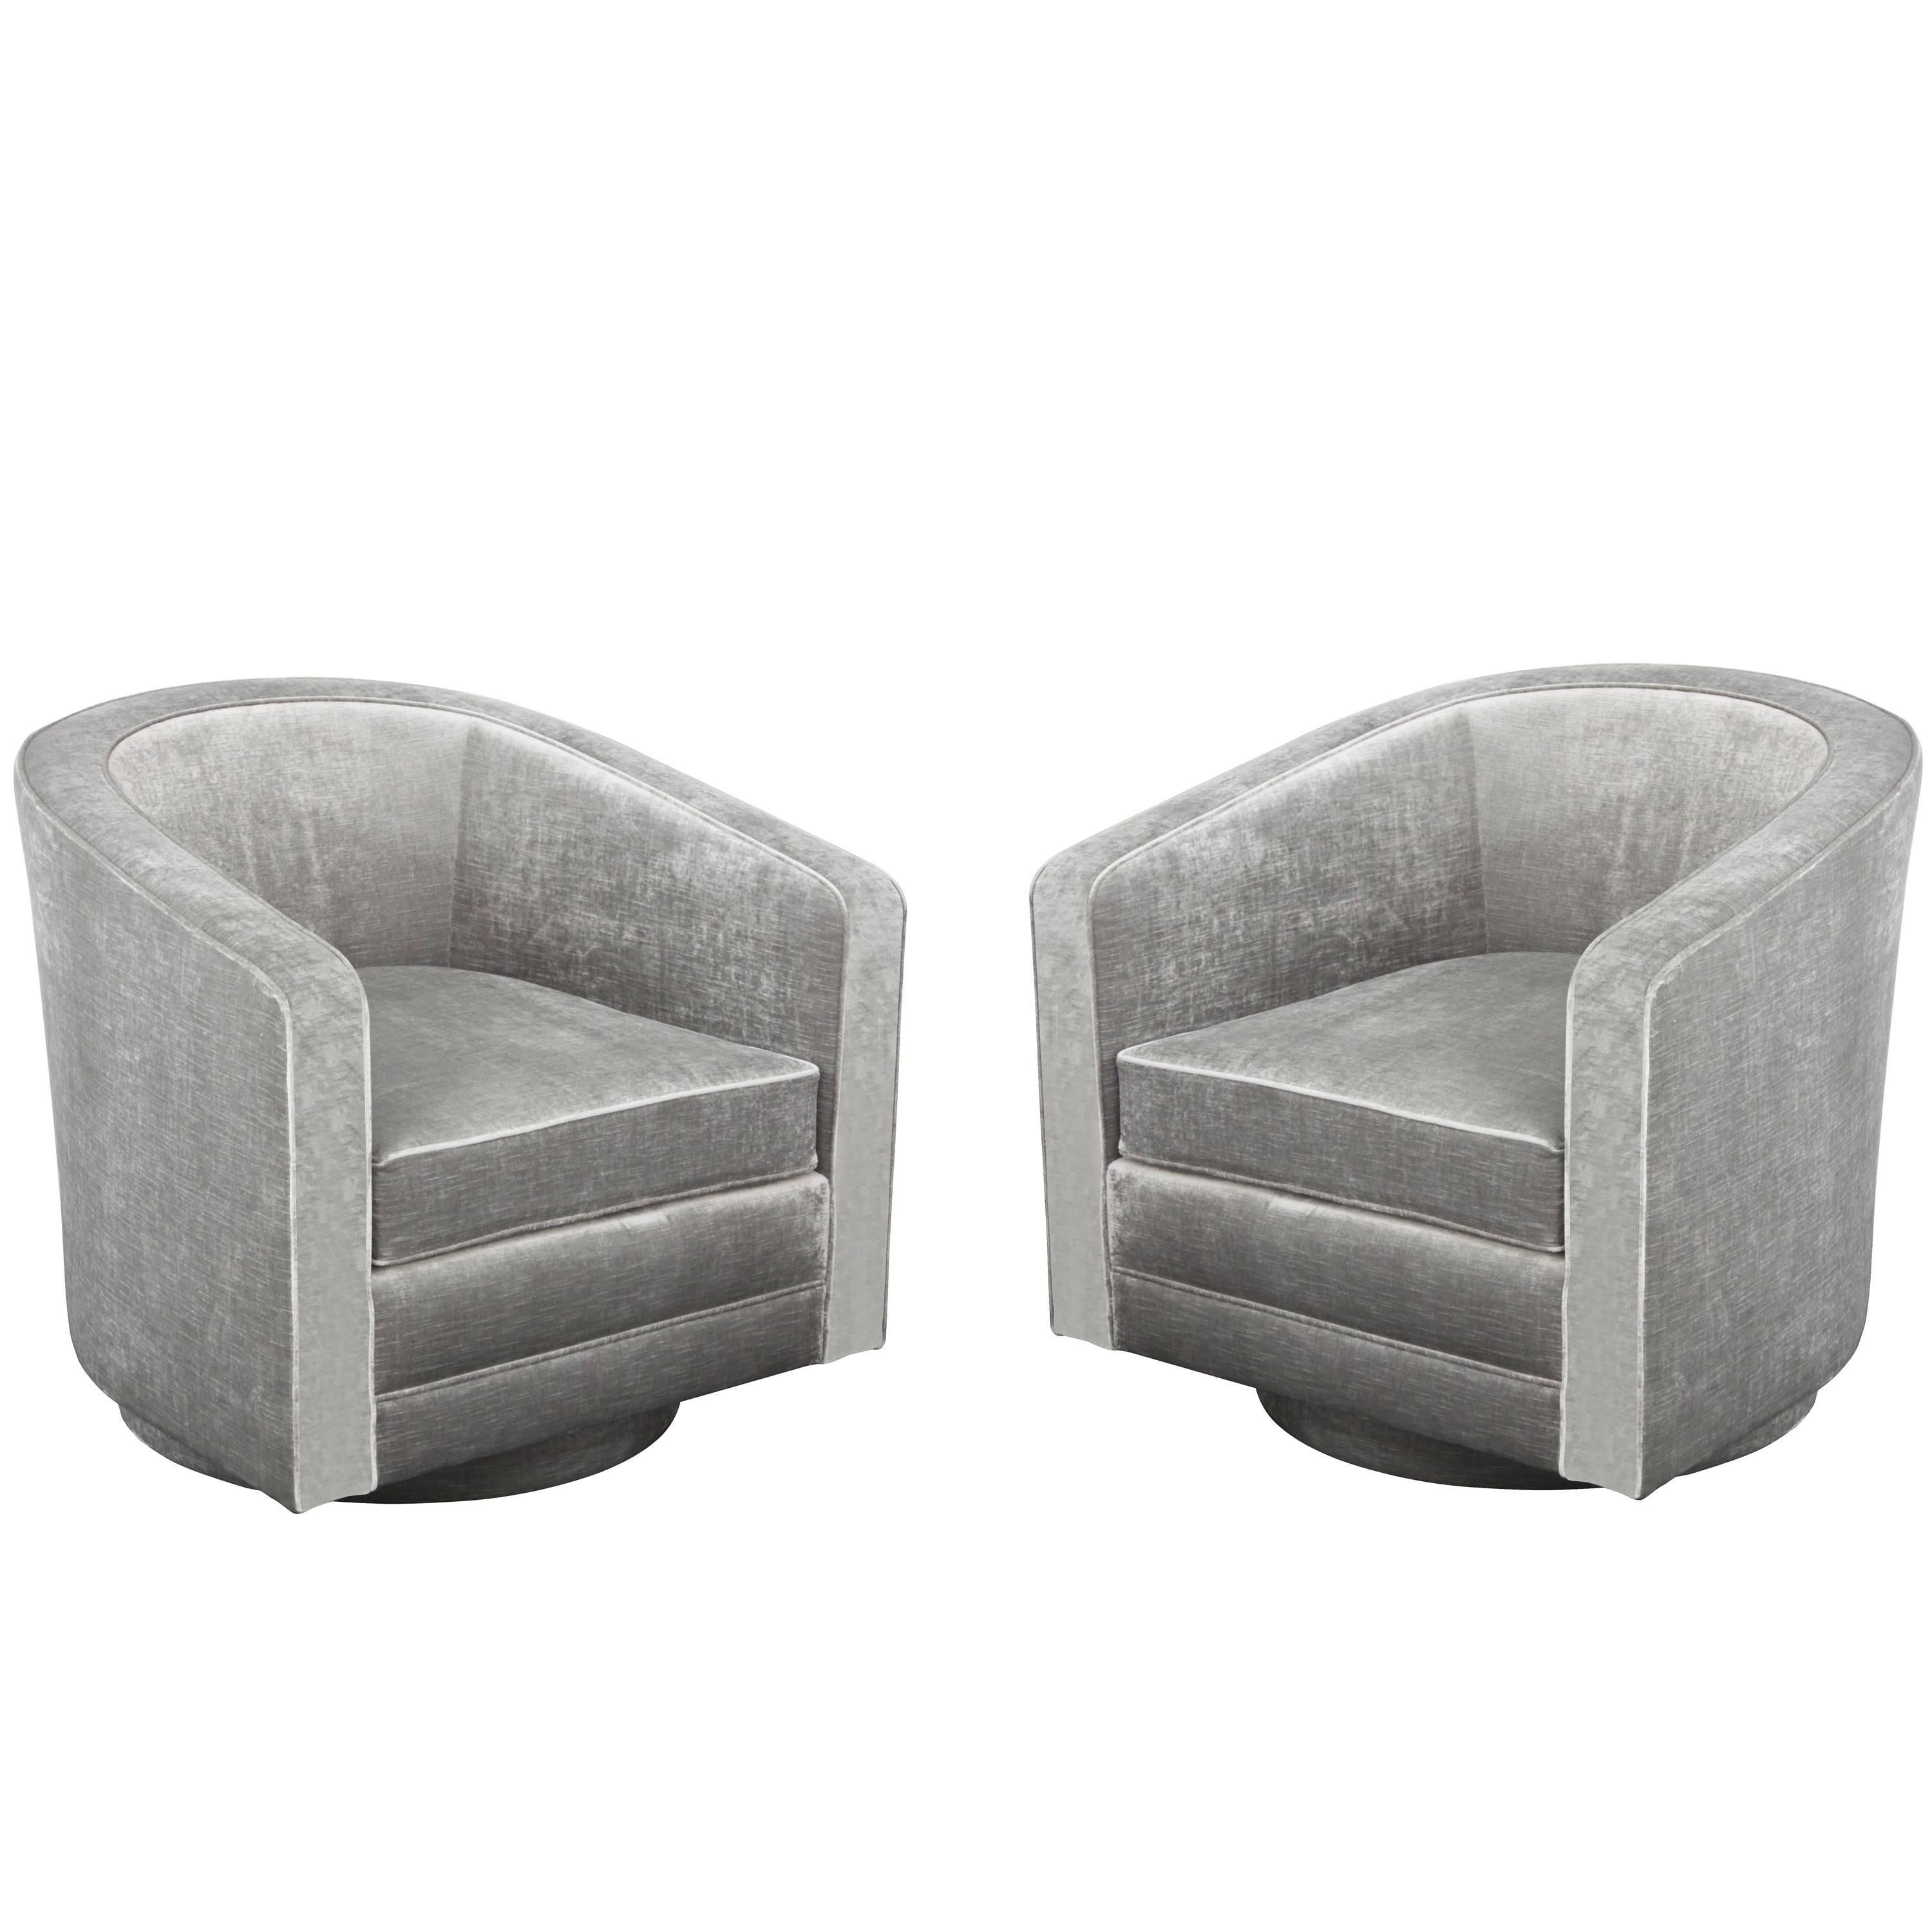 Groovy Featured Contemporary Lounge Chairs For Sale 1 140 On 1Stdibs Gmtry Best Dining Table And Chair Ideas Images Gmtryco